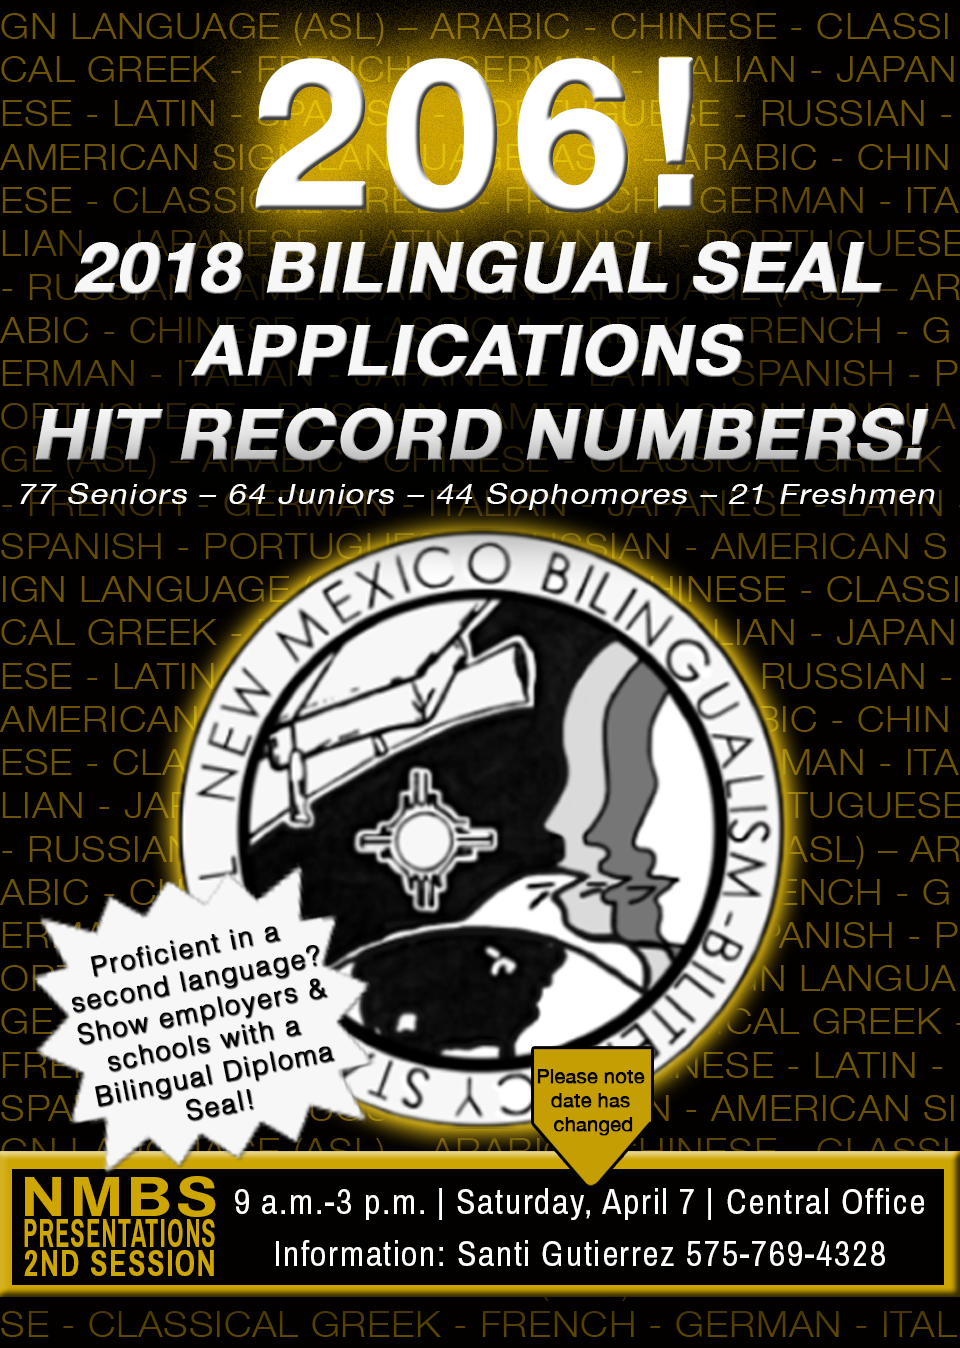 Image containing text announcing bilingual seal registrations